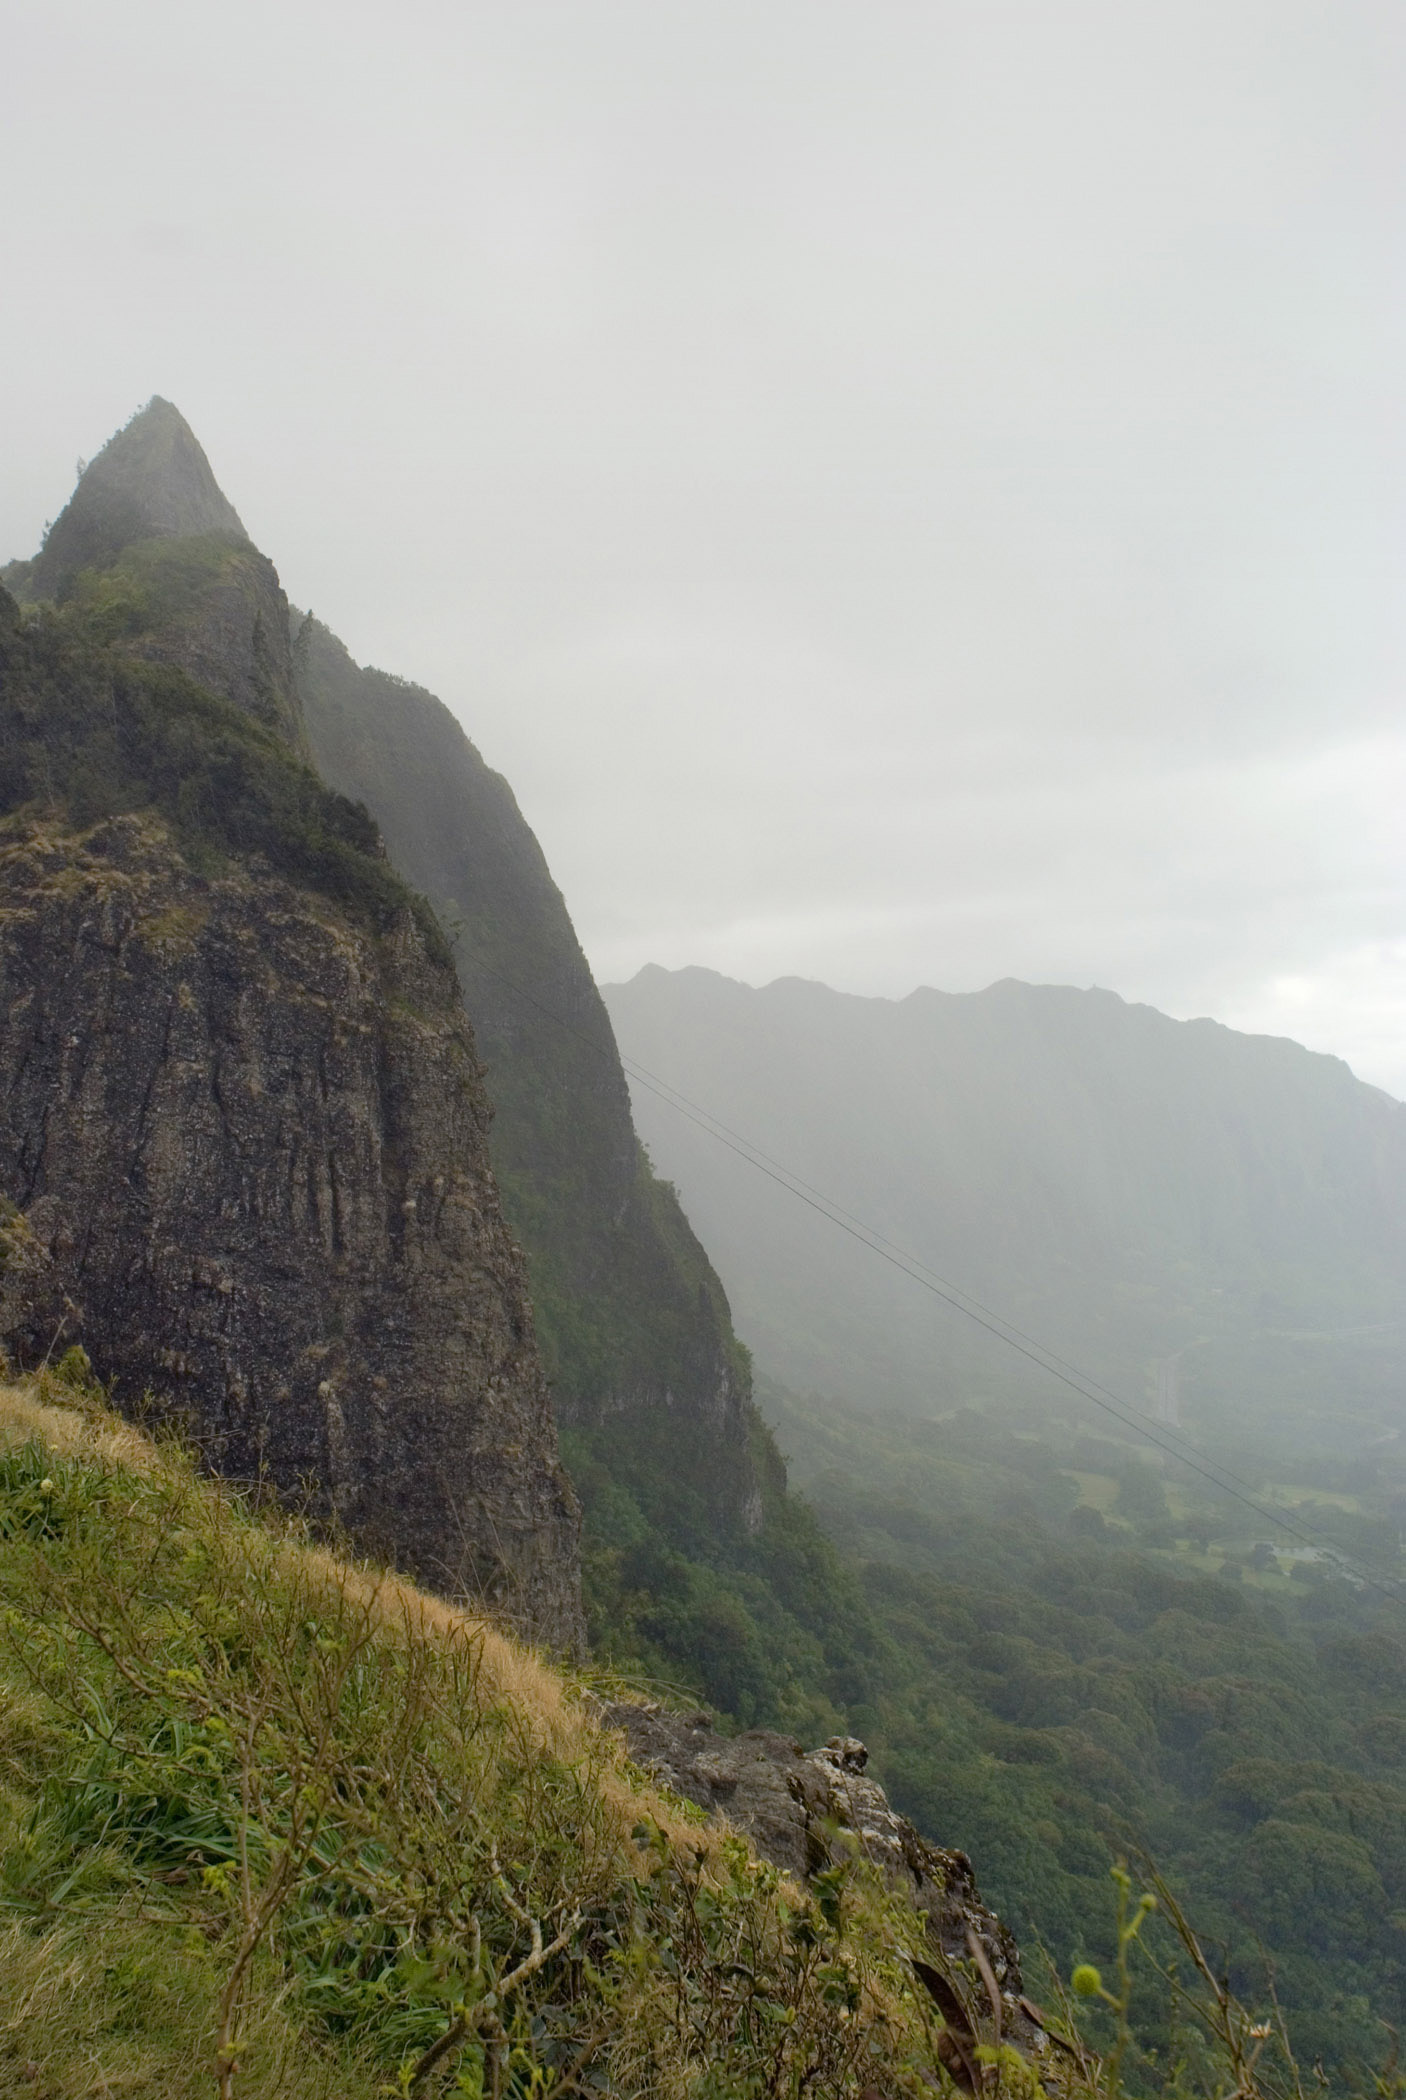 View from the Pali Lookout in Ohau, Hawaaii looking out over the mountain ranges on a rainy misty atmospheric day